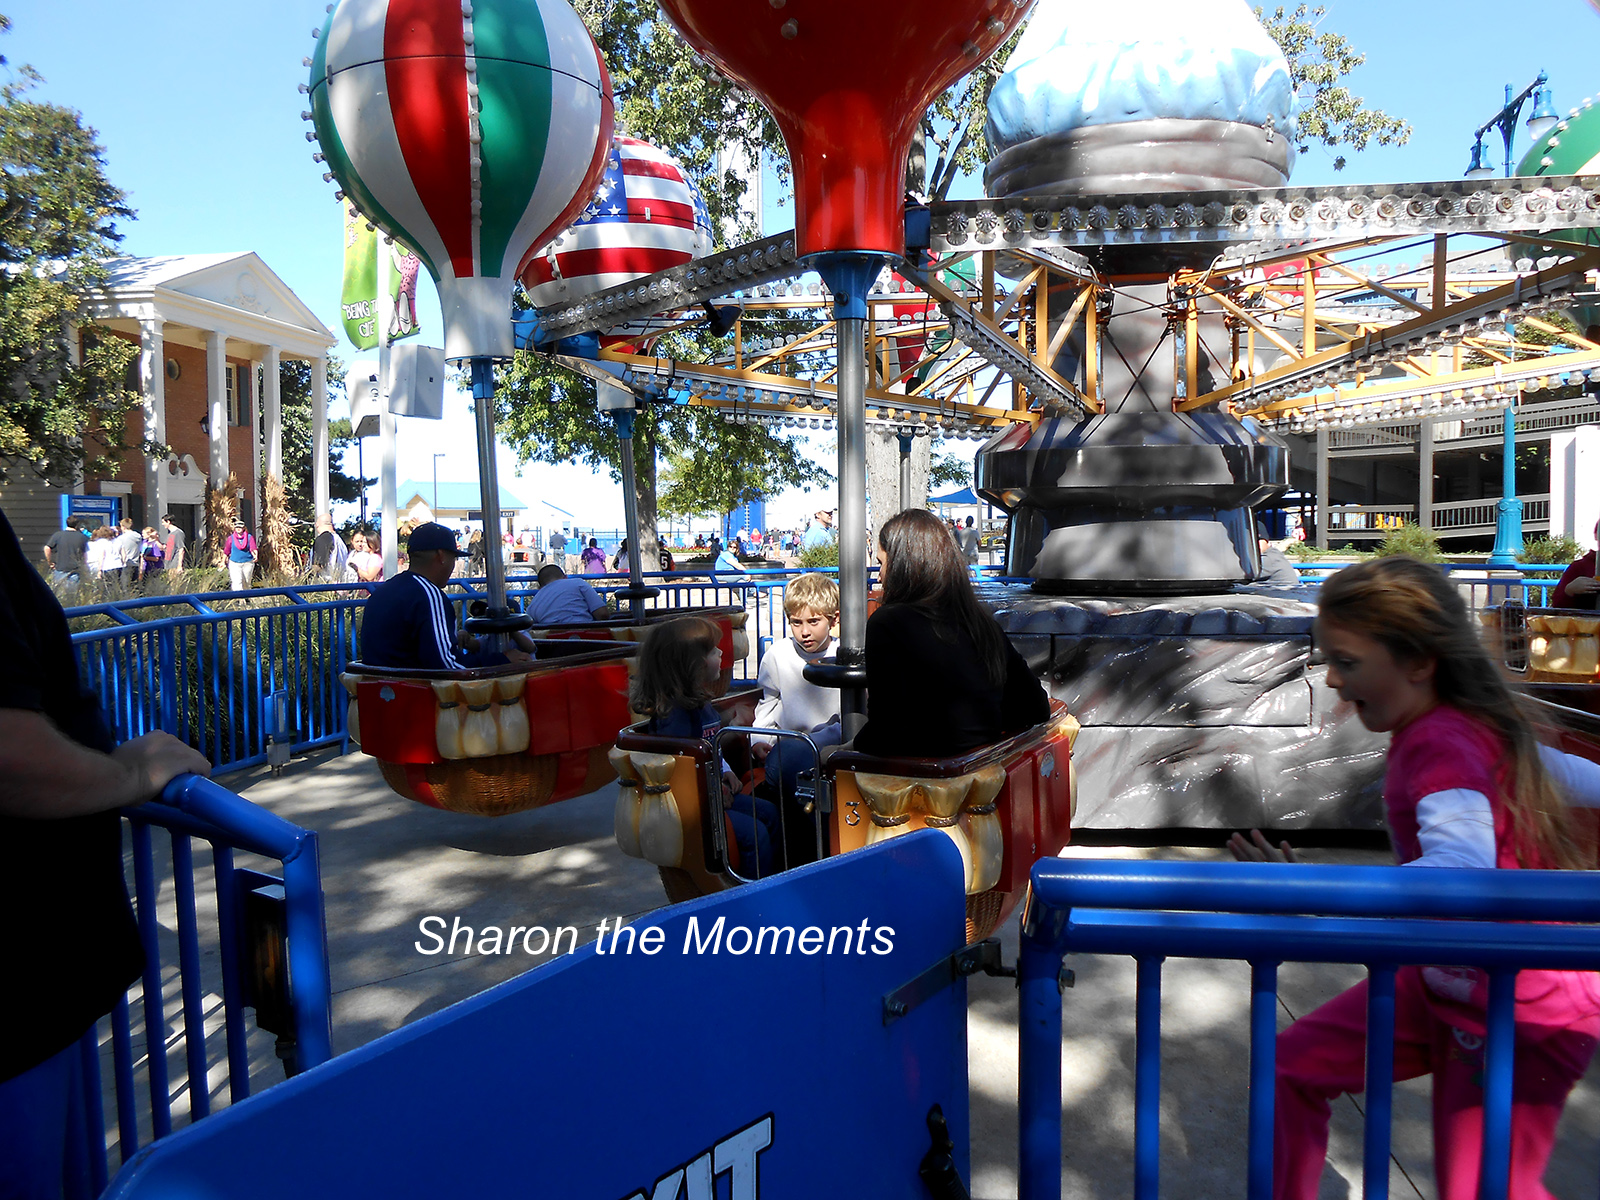 Cedar Point Sandusky Ohio Roller Coaster Capital|Sharon the Moments Blog